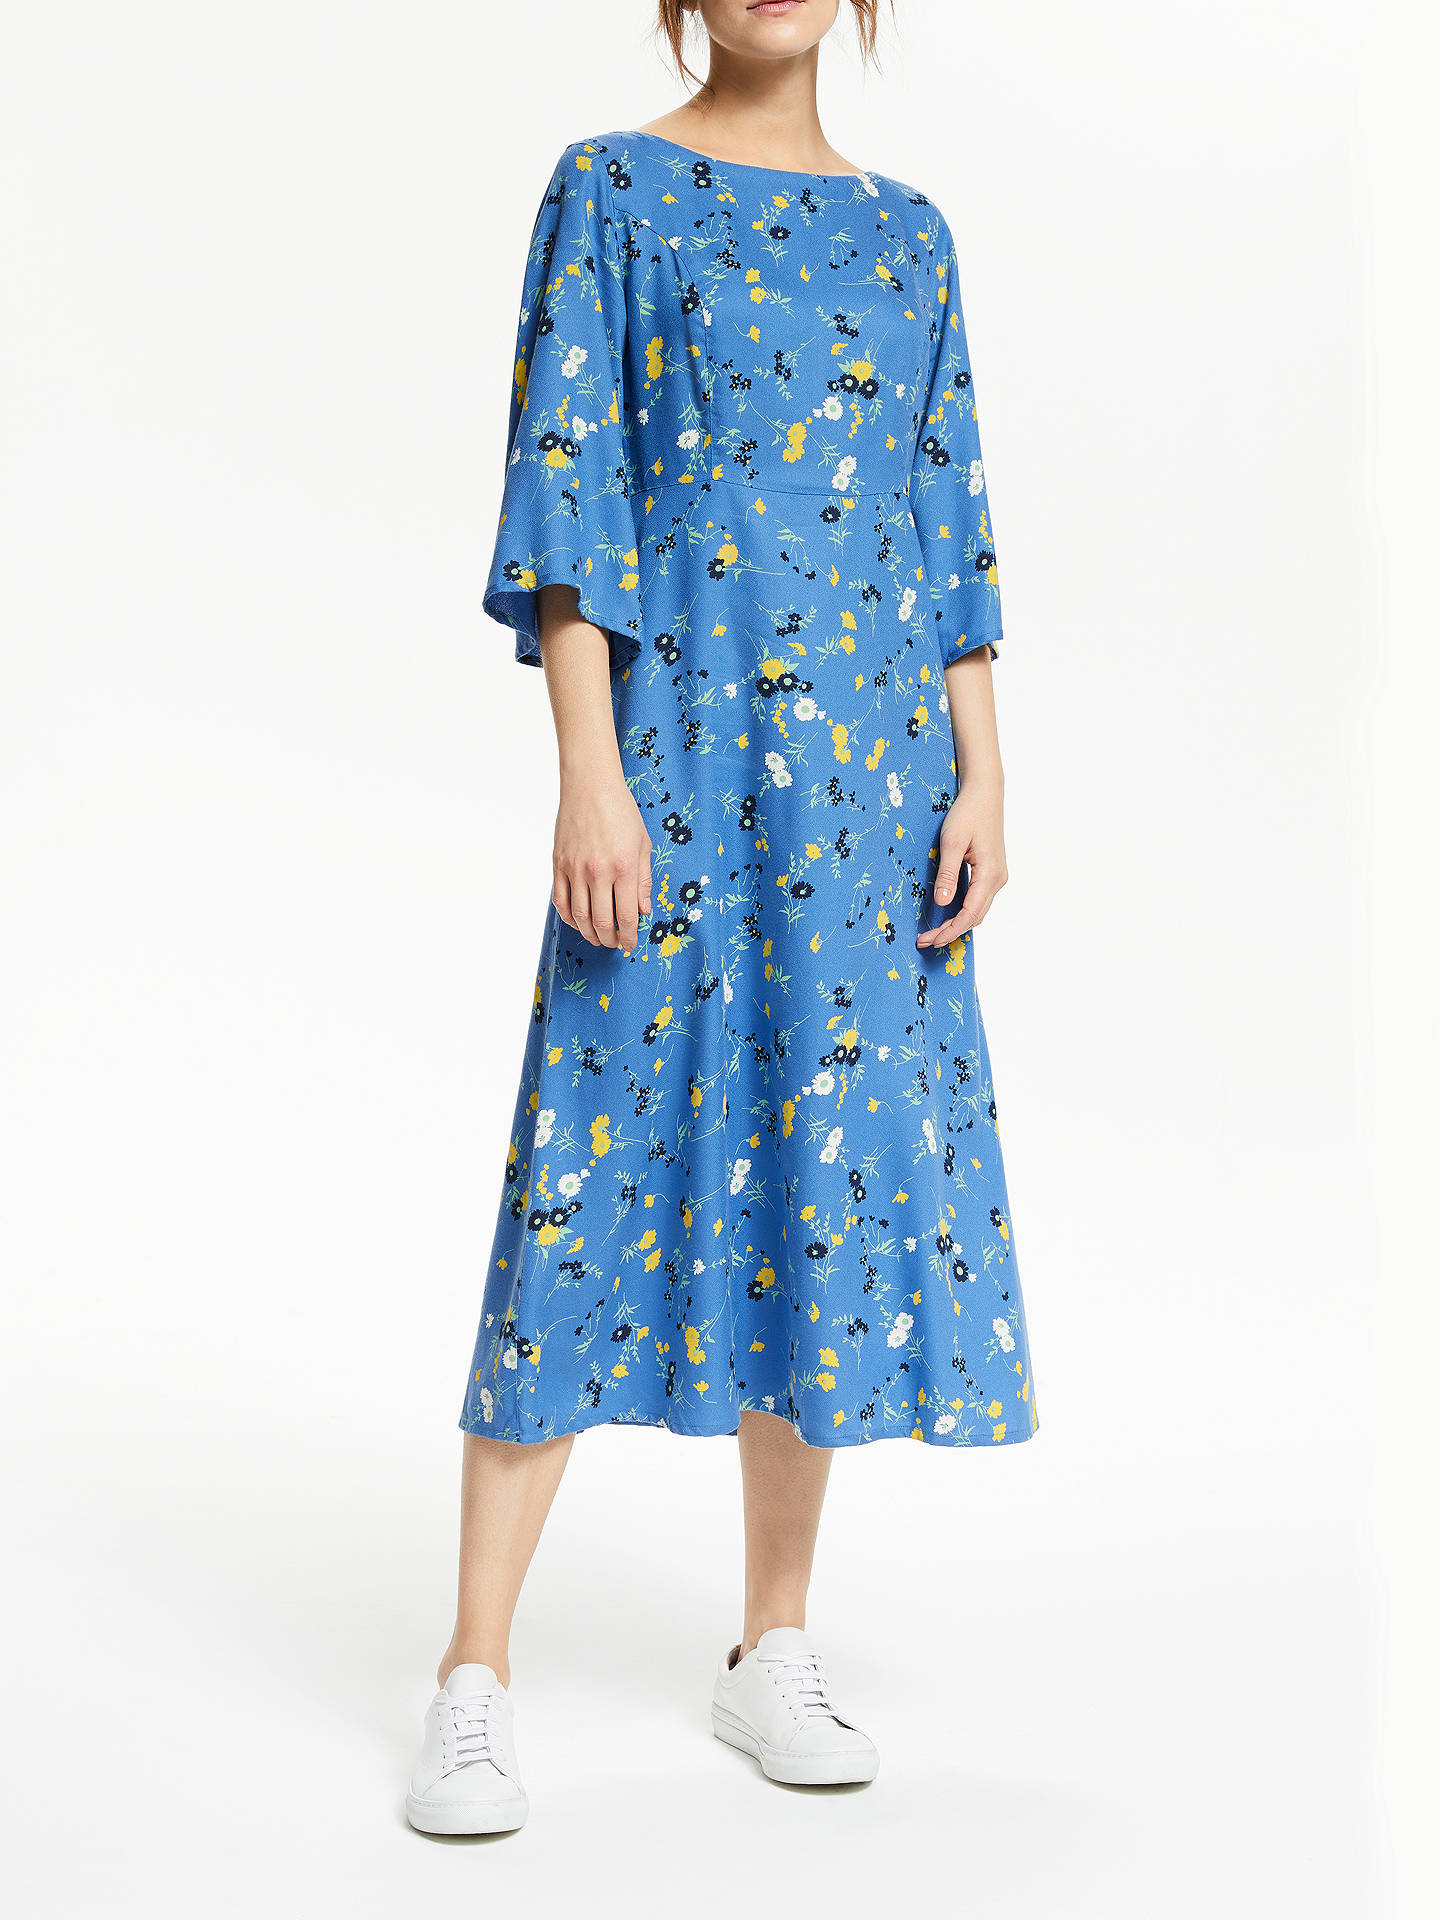 fea8e0a475827 Buy People Tree Matilda Floral Dress, Blue, 8 Online at johnlewis.com ...